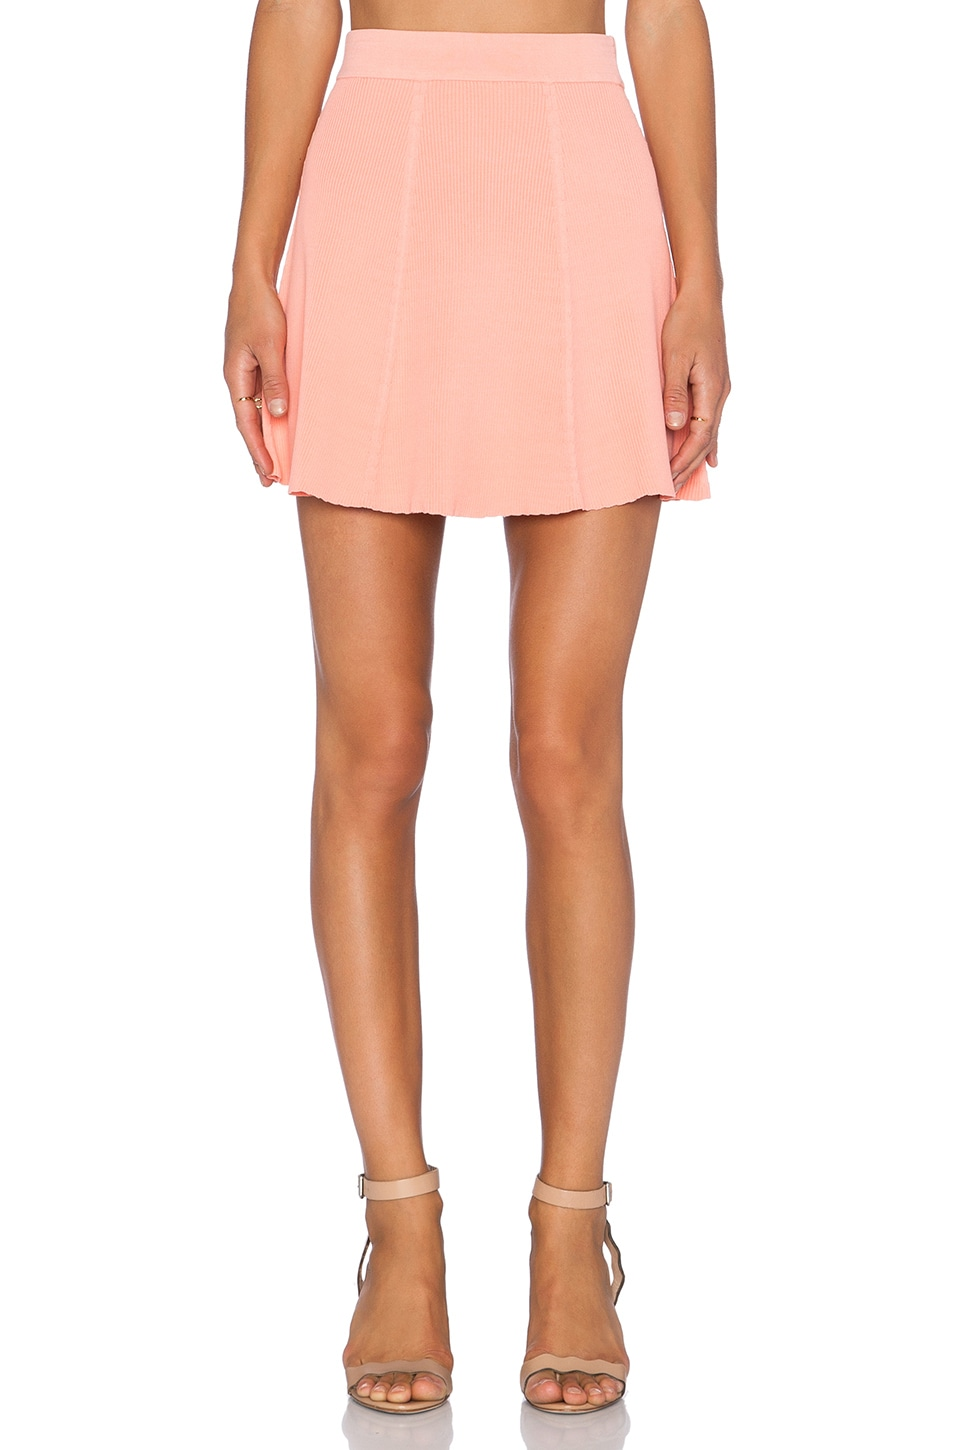 Lucy Paris Rib Skater Mini Skirt in Coral